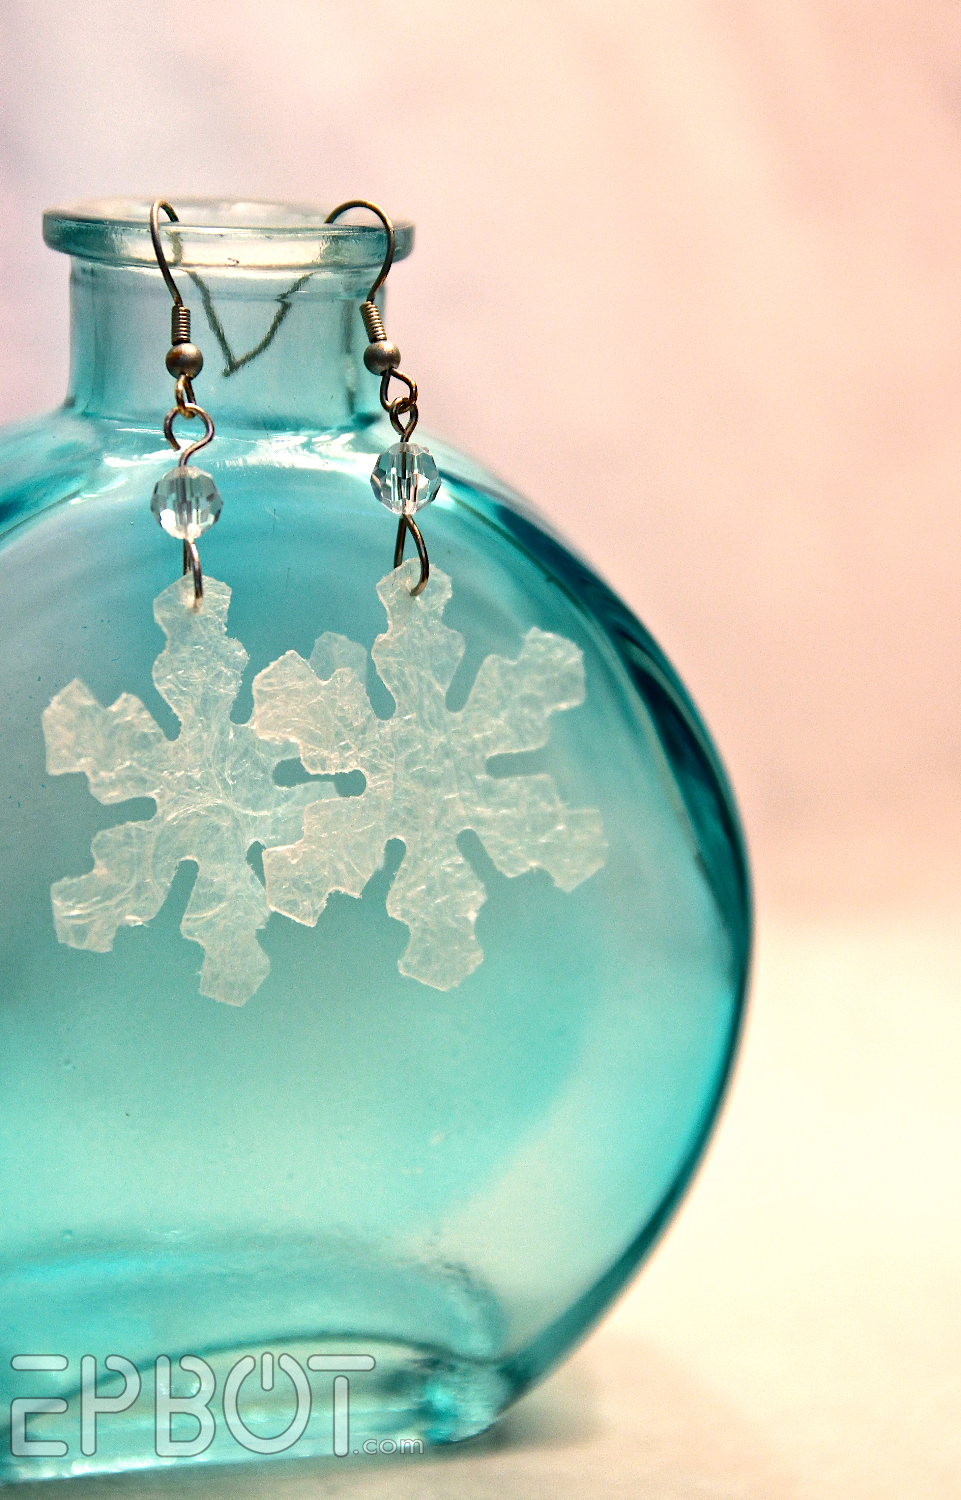 f2e33ef14c6f6 EPBOT: Icy Earrings From... Bubble Wrap?!